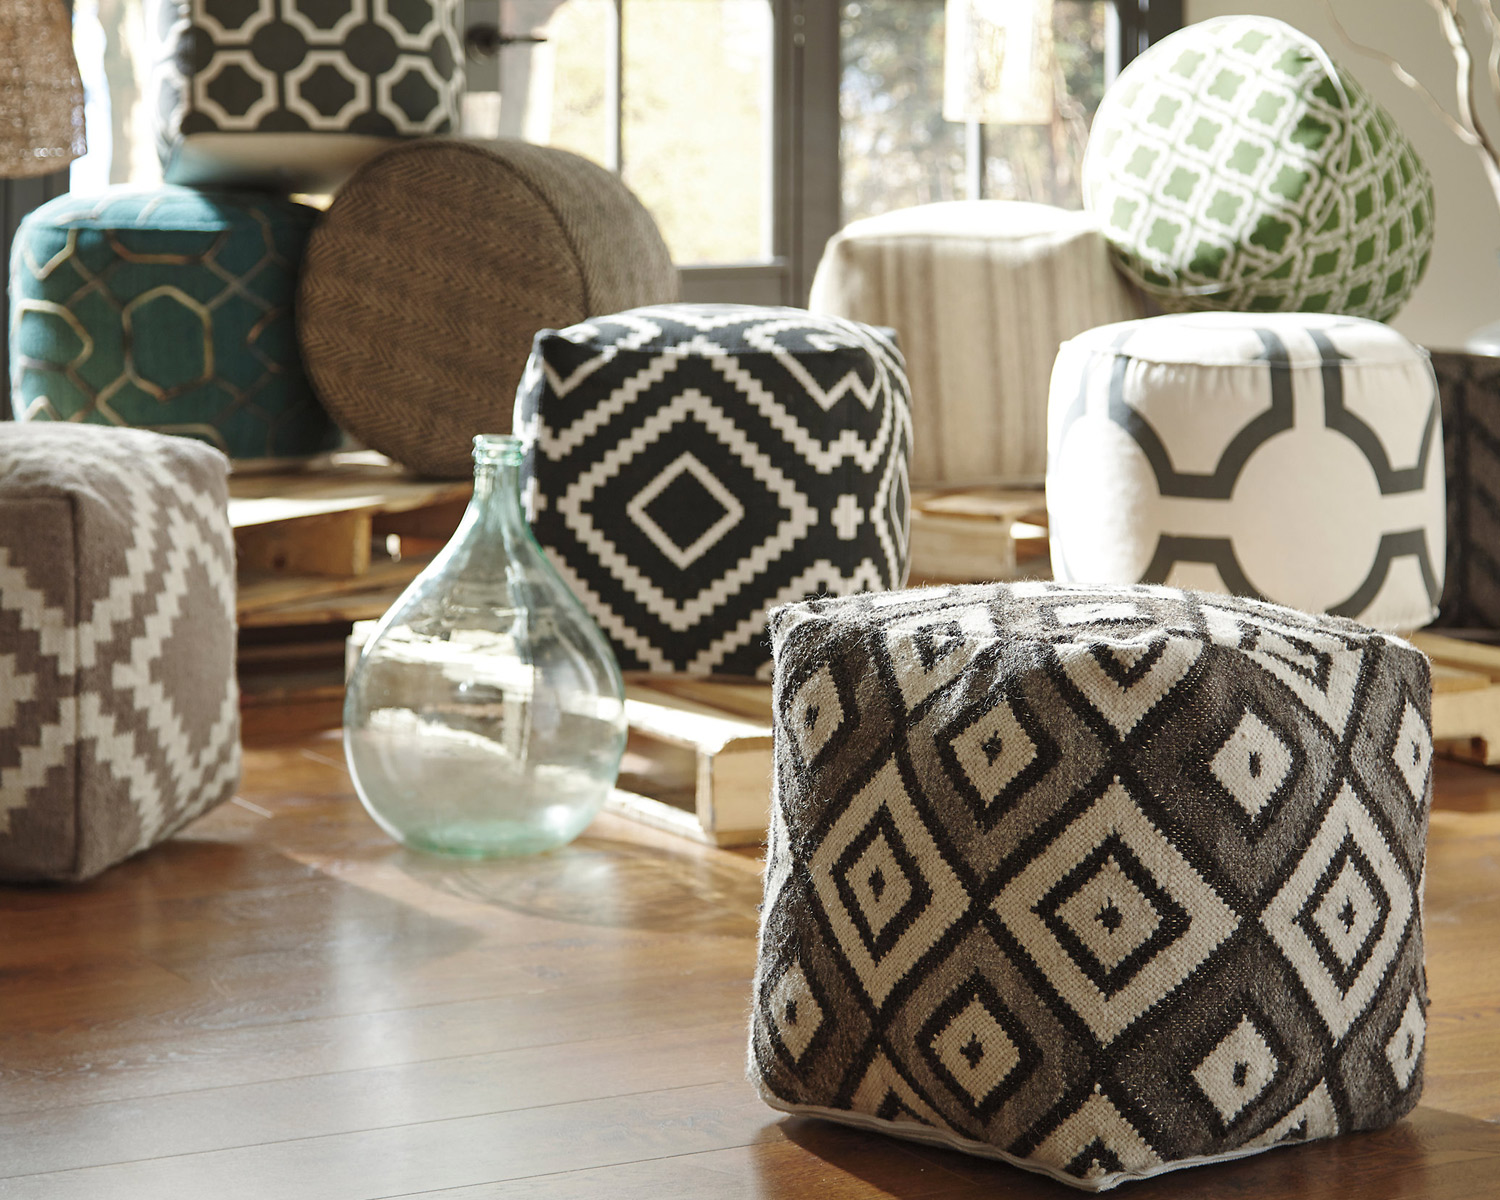 pouf in living room brown couch ideas great tips & for decorating with ottomans